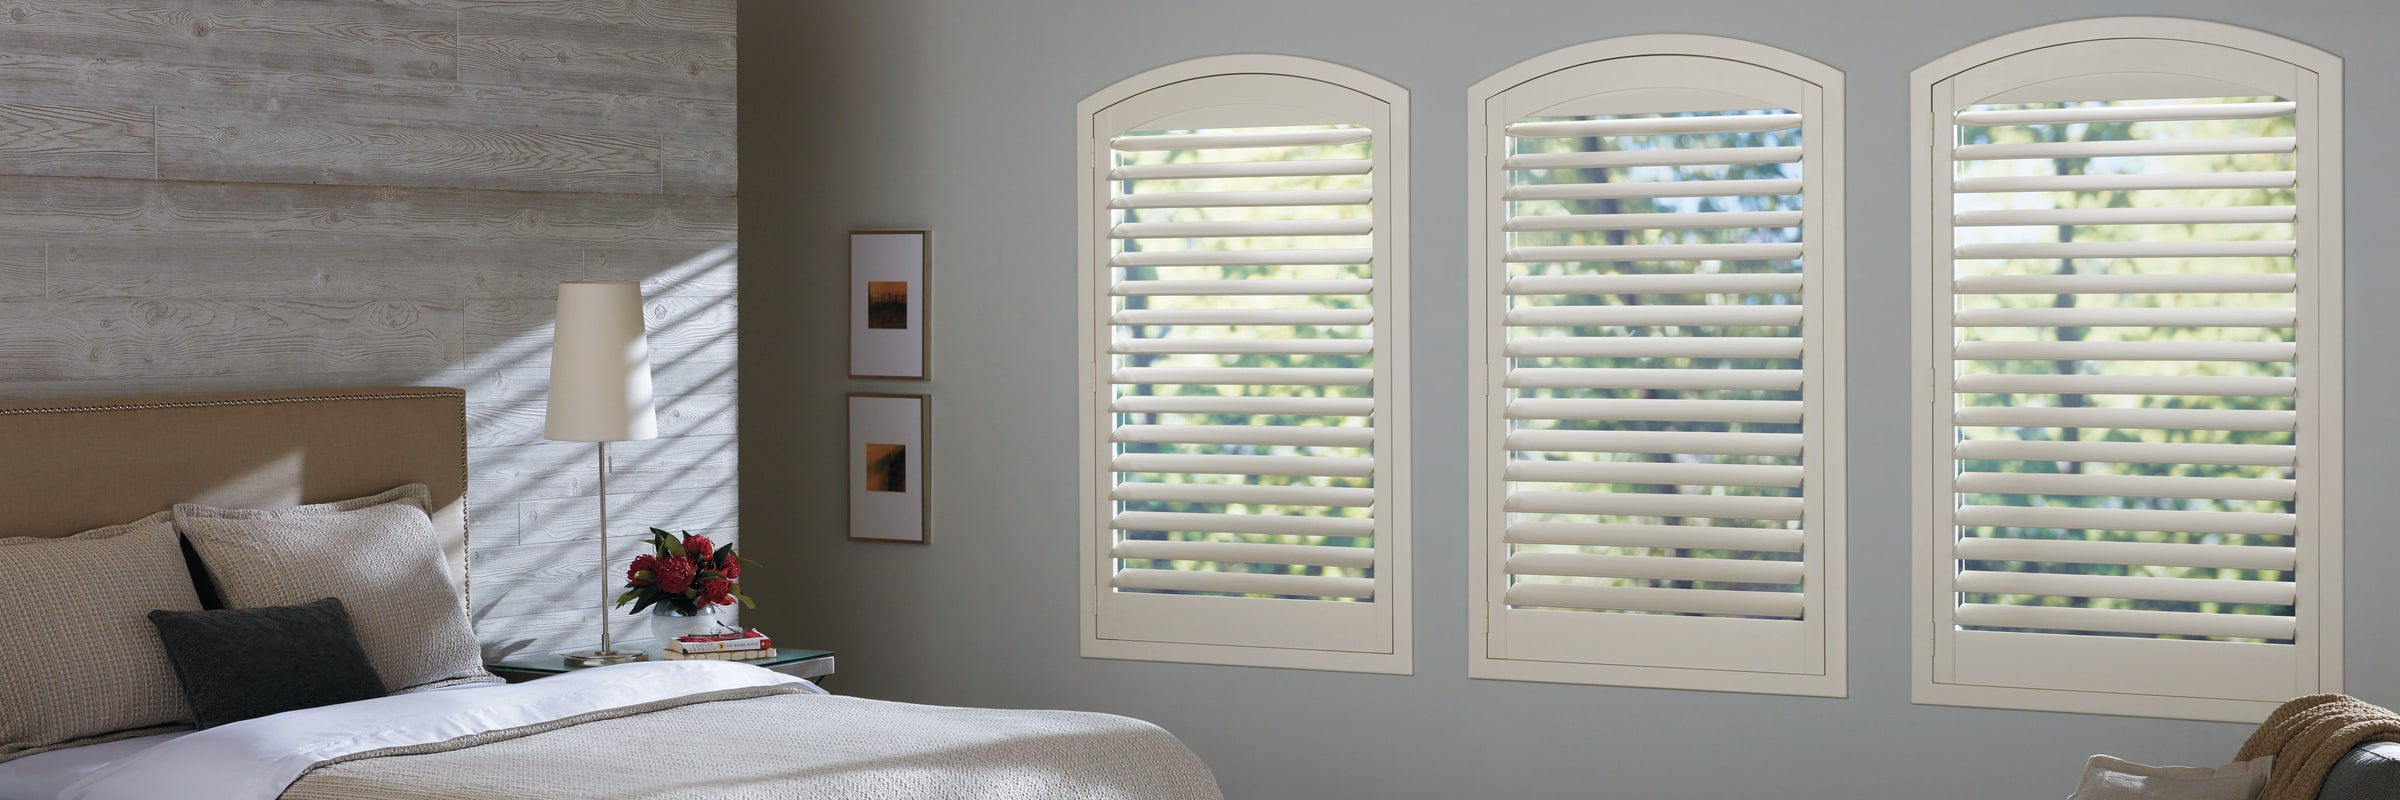 Hybrid interior shutters custom shutters newstyle for Interieur shutters